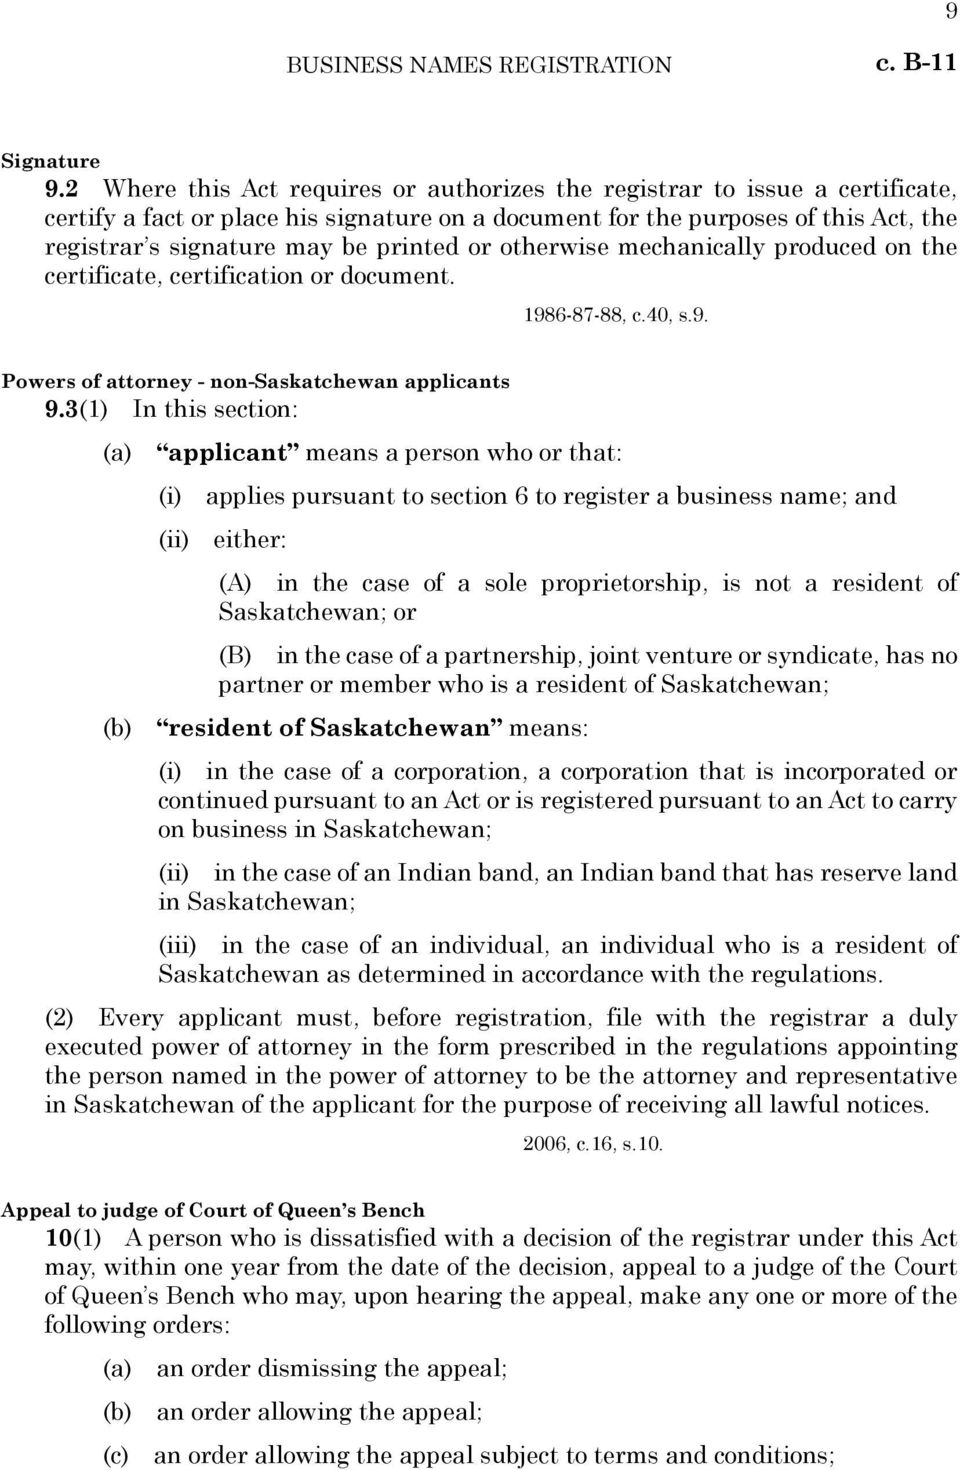 printed or otherwise mechanically produced on the certificate, certification or document. 1986-87-88, c.40, s.9. Powers of attorney - non-saskatchewan applicants 9.